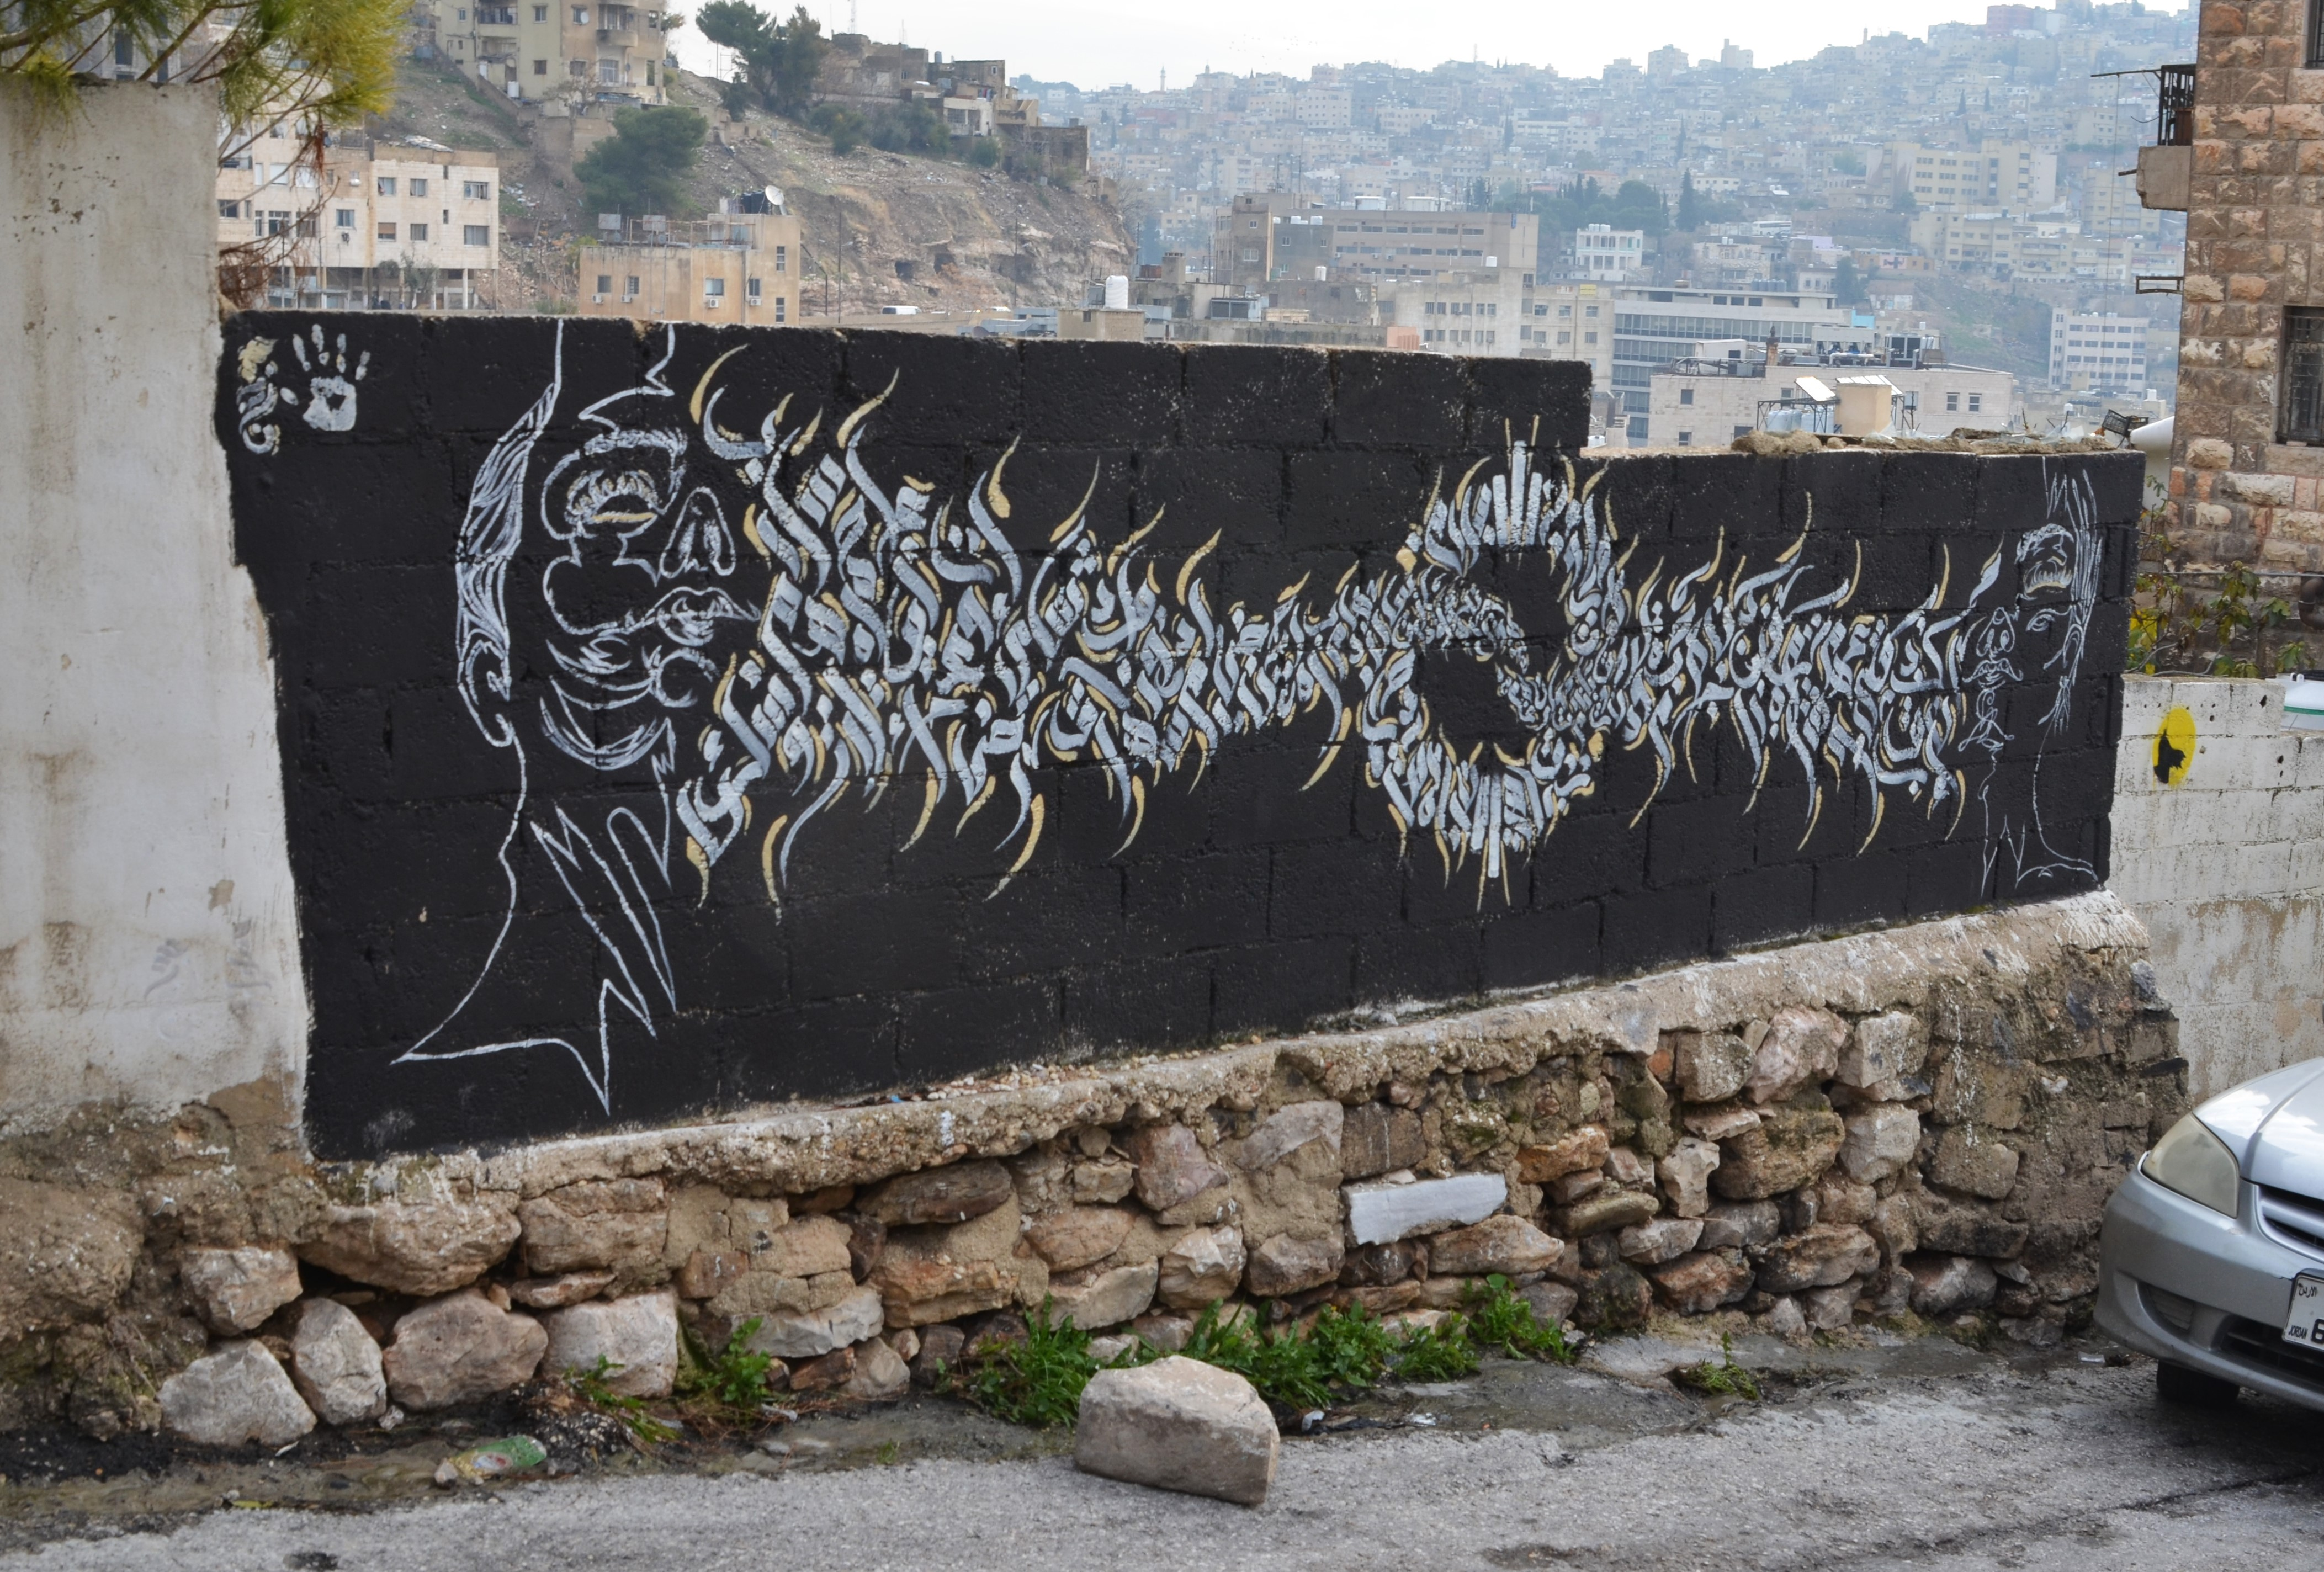 black and white mural of two faces, one at each end, with arabic letters between them